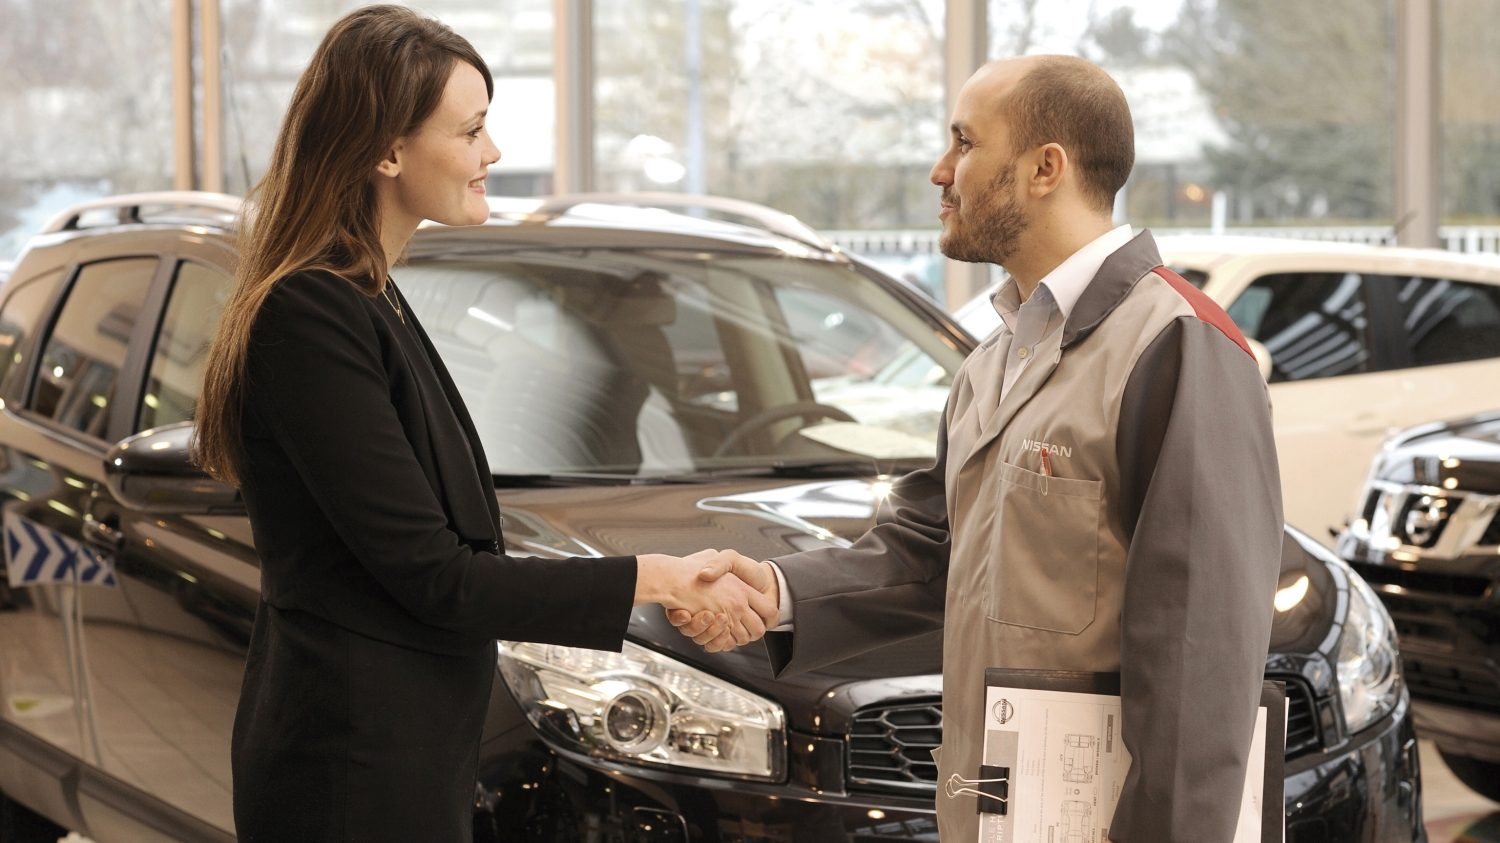 Crossovers - Customer care | Nissan